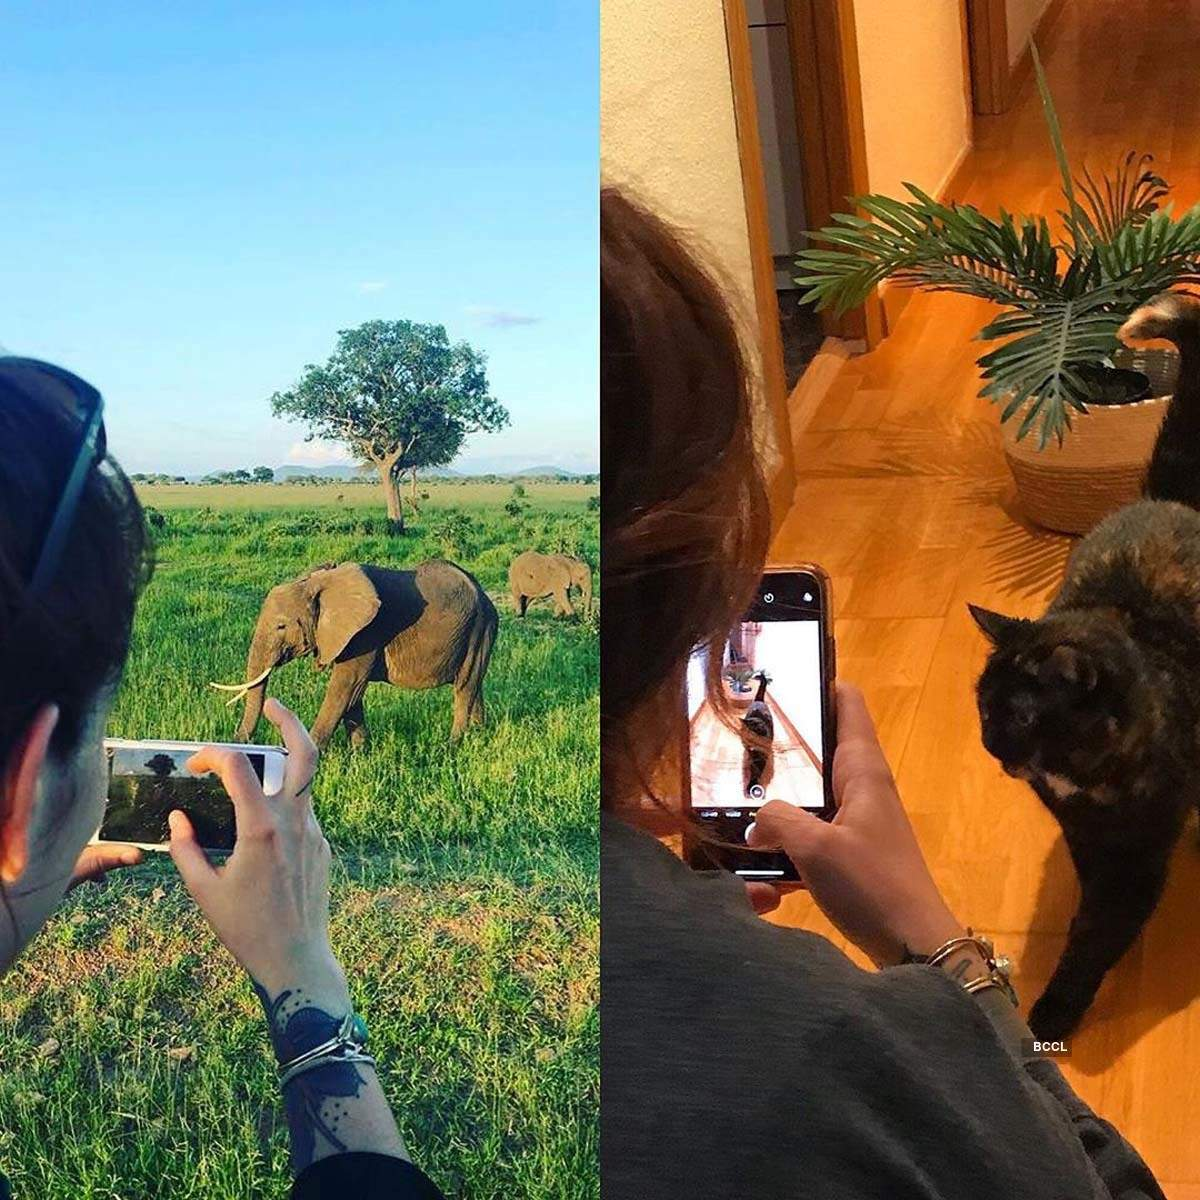 Hilarious pictures of people taking up #QuarantineTravelChallenge to recreate their holidays at home